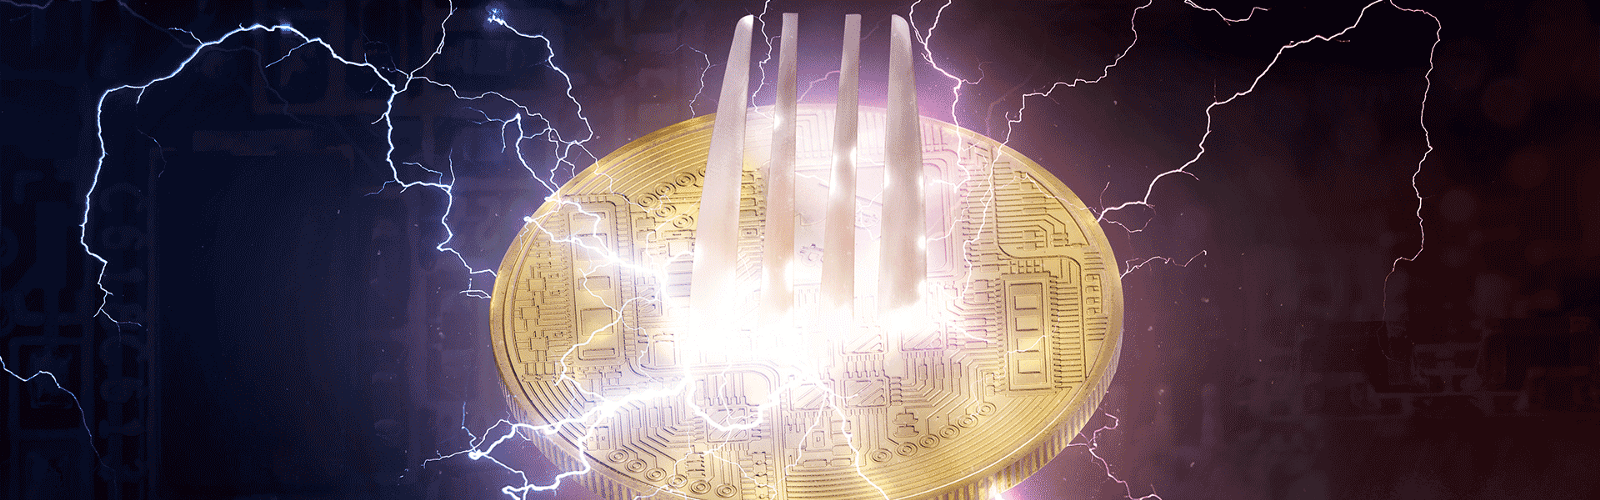 /fork-off-what-the-bitcoin-cash-hard-fork-means-for-crypto-fe07db1d038 feature image